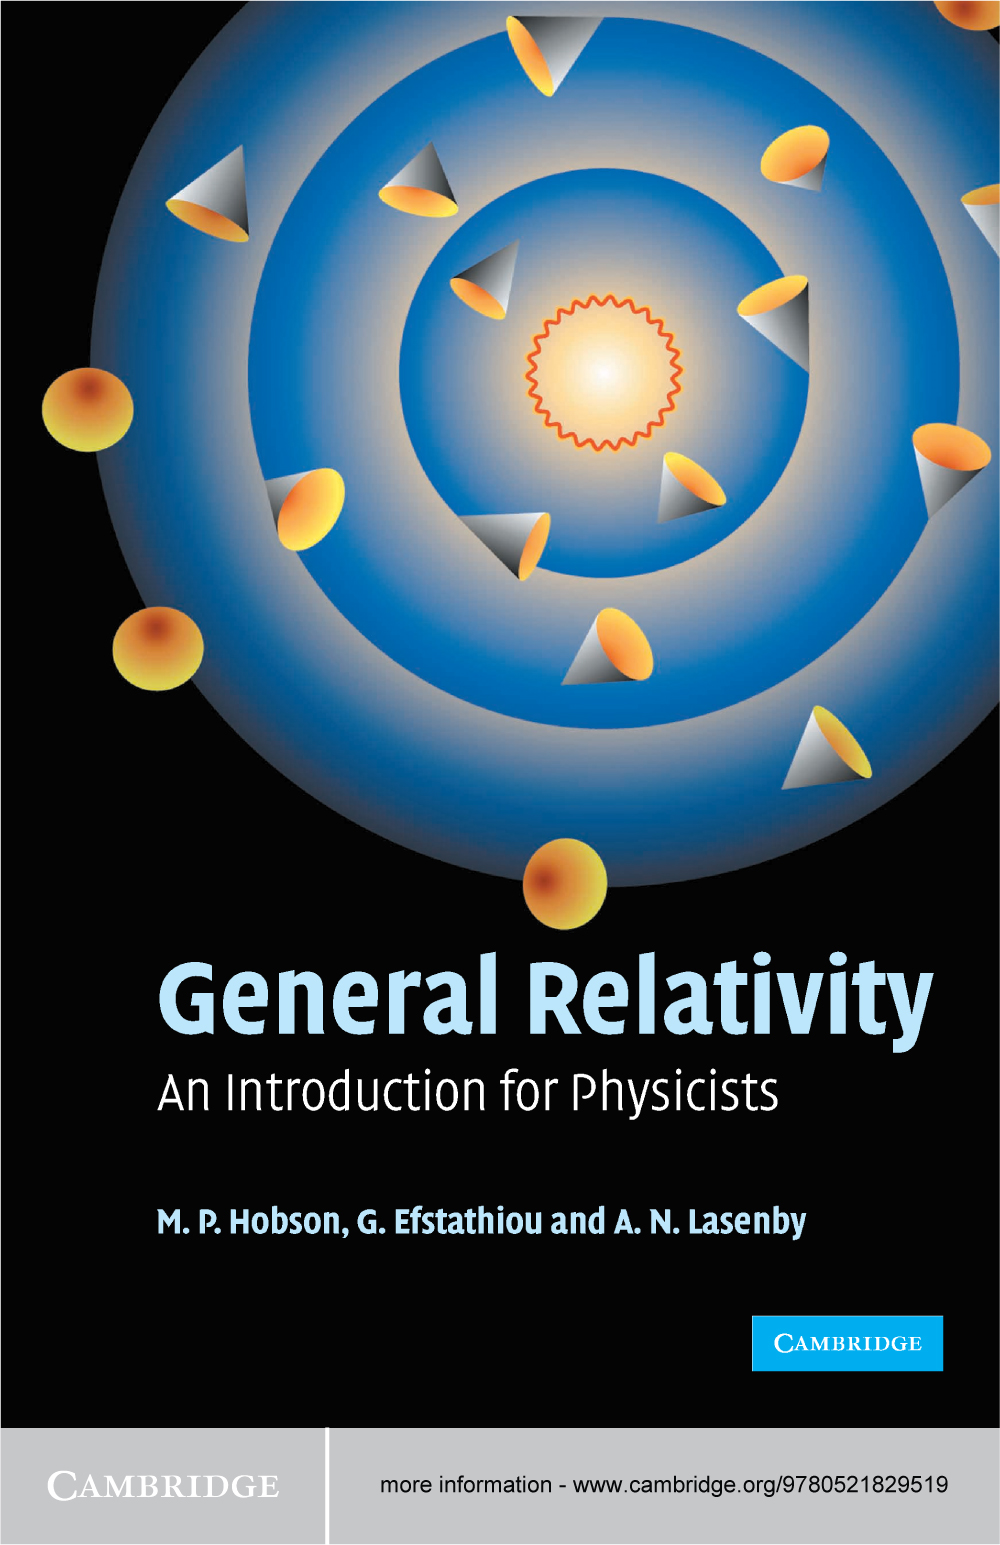 General Relativity An Introduction for Physicists